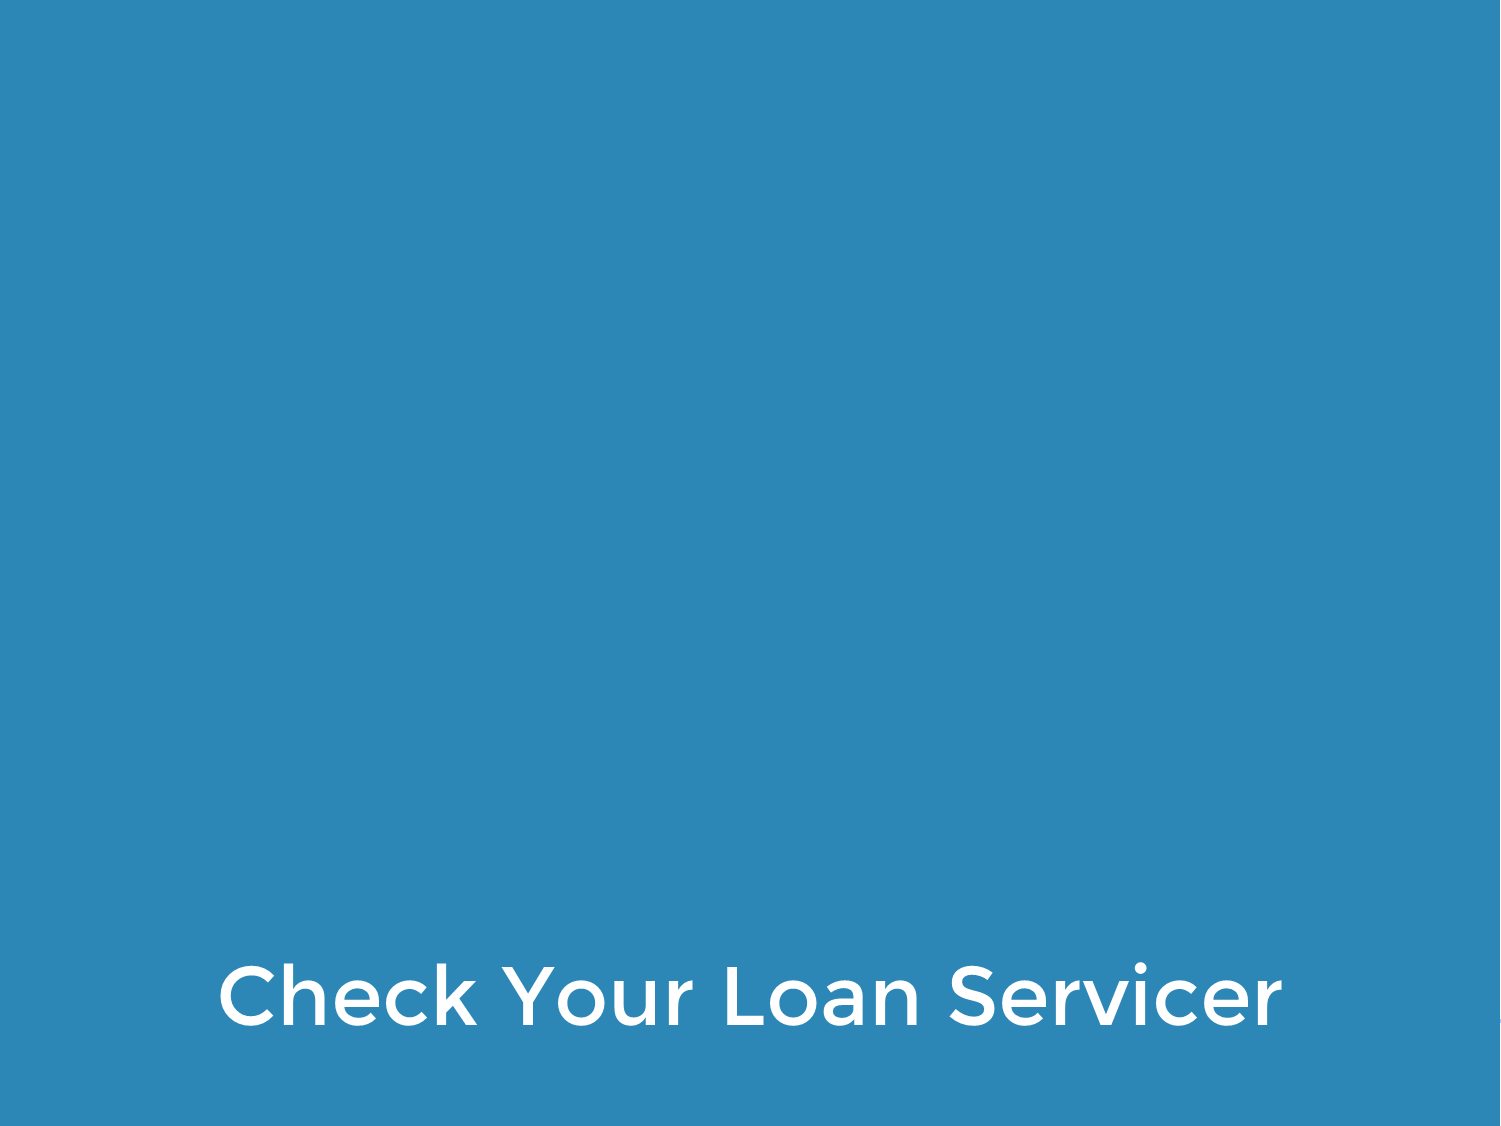 Monitor Your Federal Loan Servicer